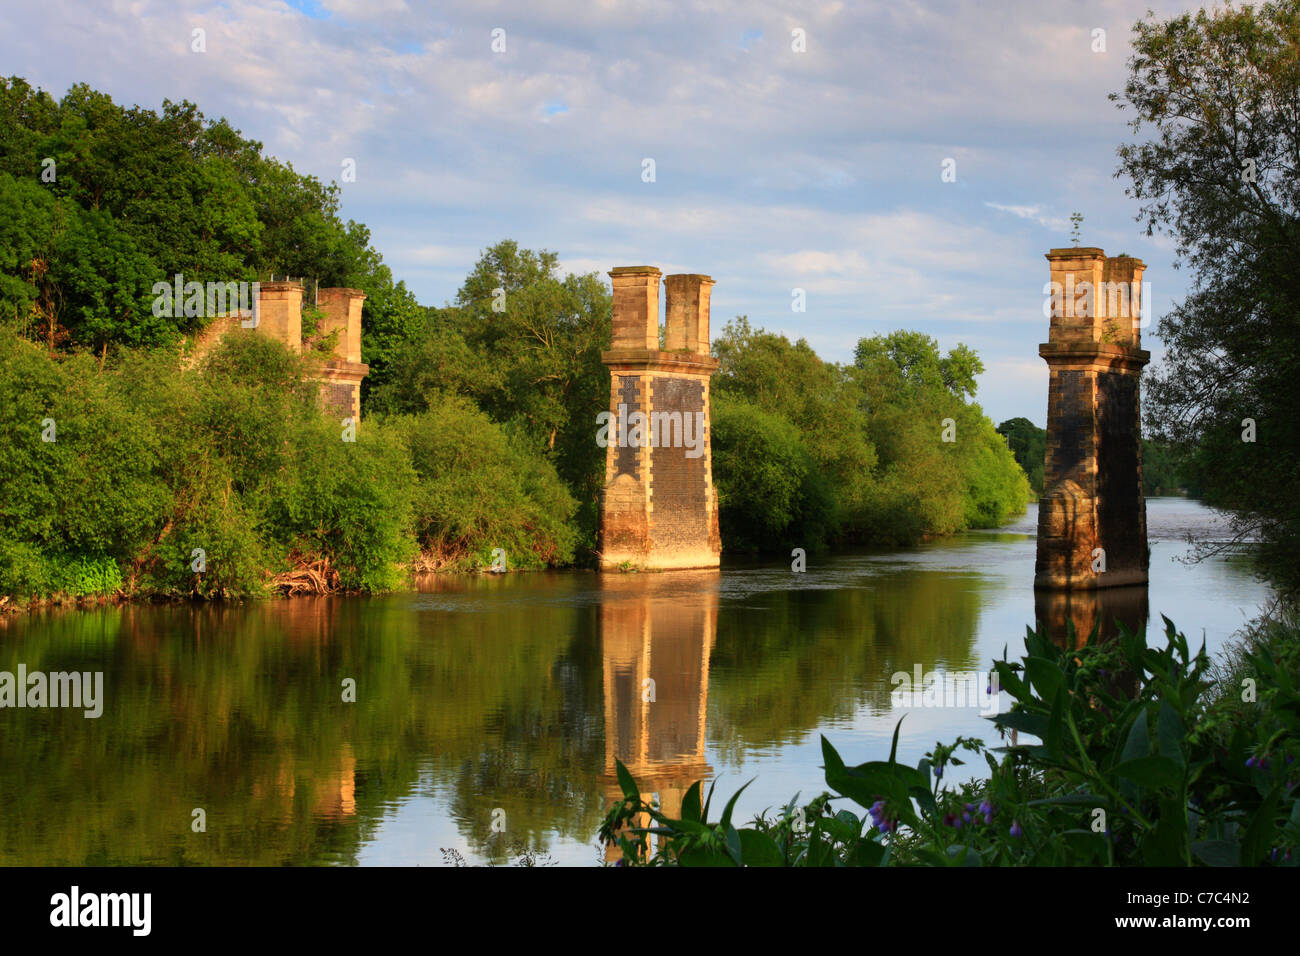 Partially dismantled railway bridge crossing the River Severn, Near Bewdley, Worcestershire, England - Stock Image